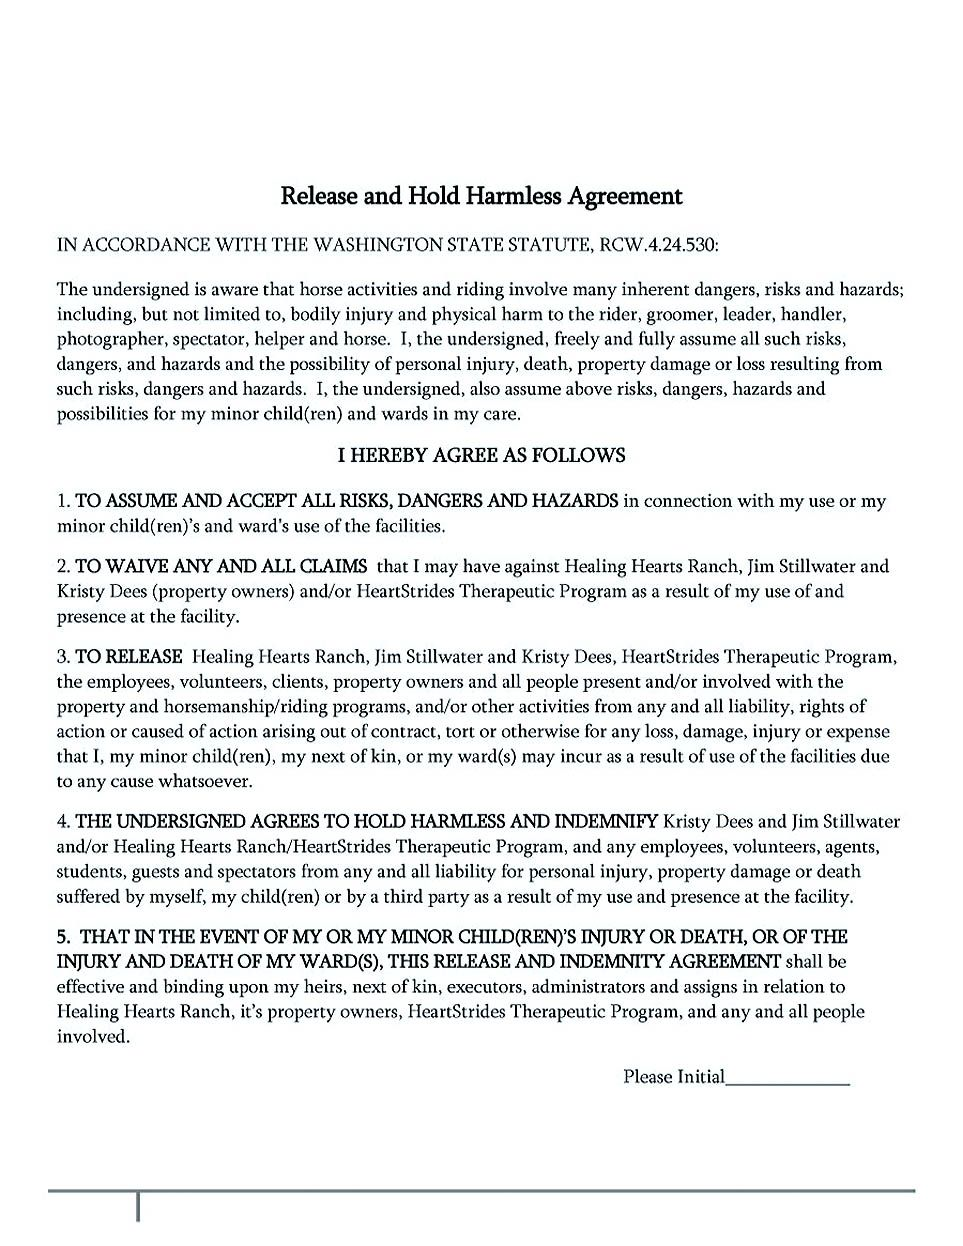 Hold Harmless Agreement Template Free Making Hold Harmless